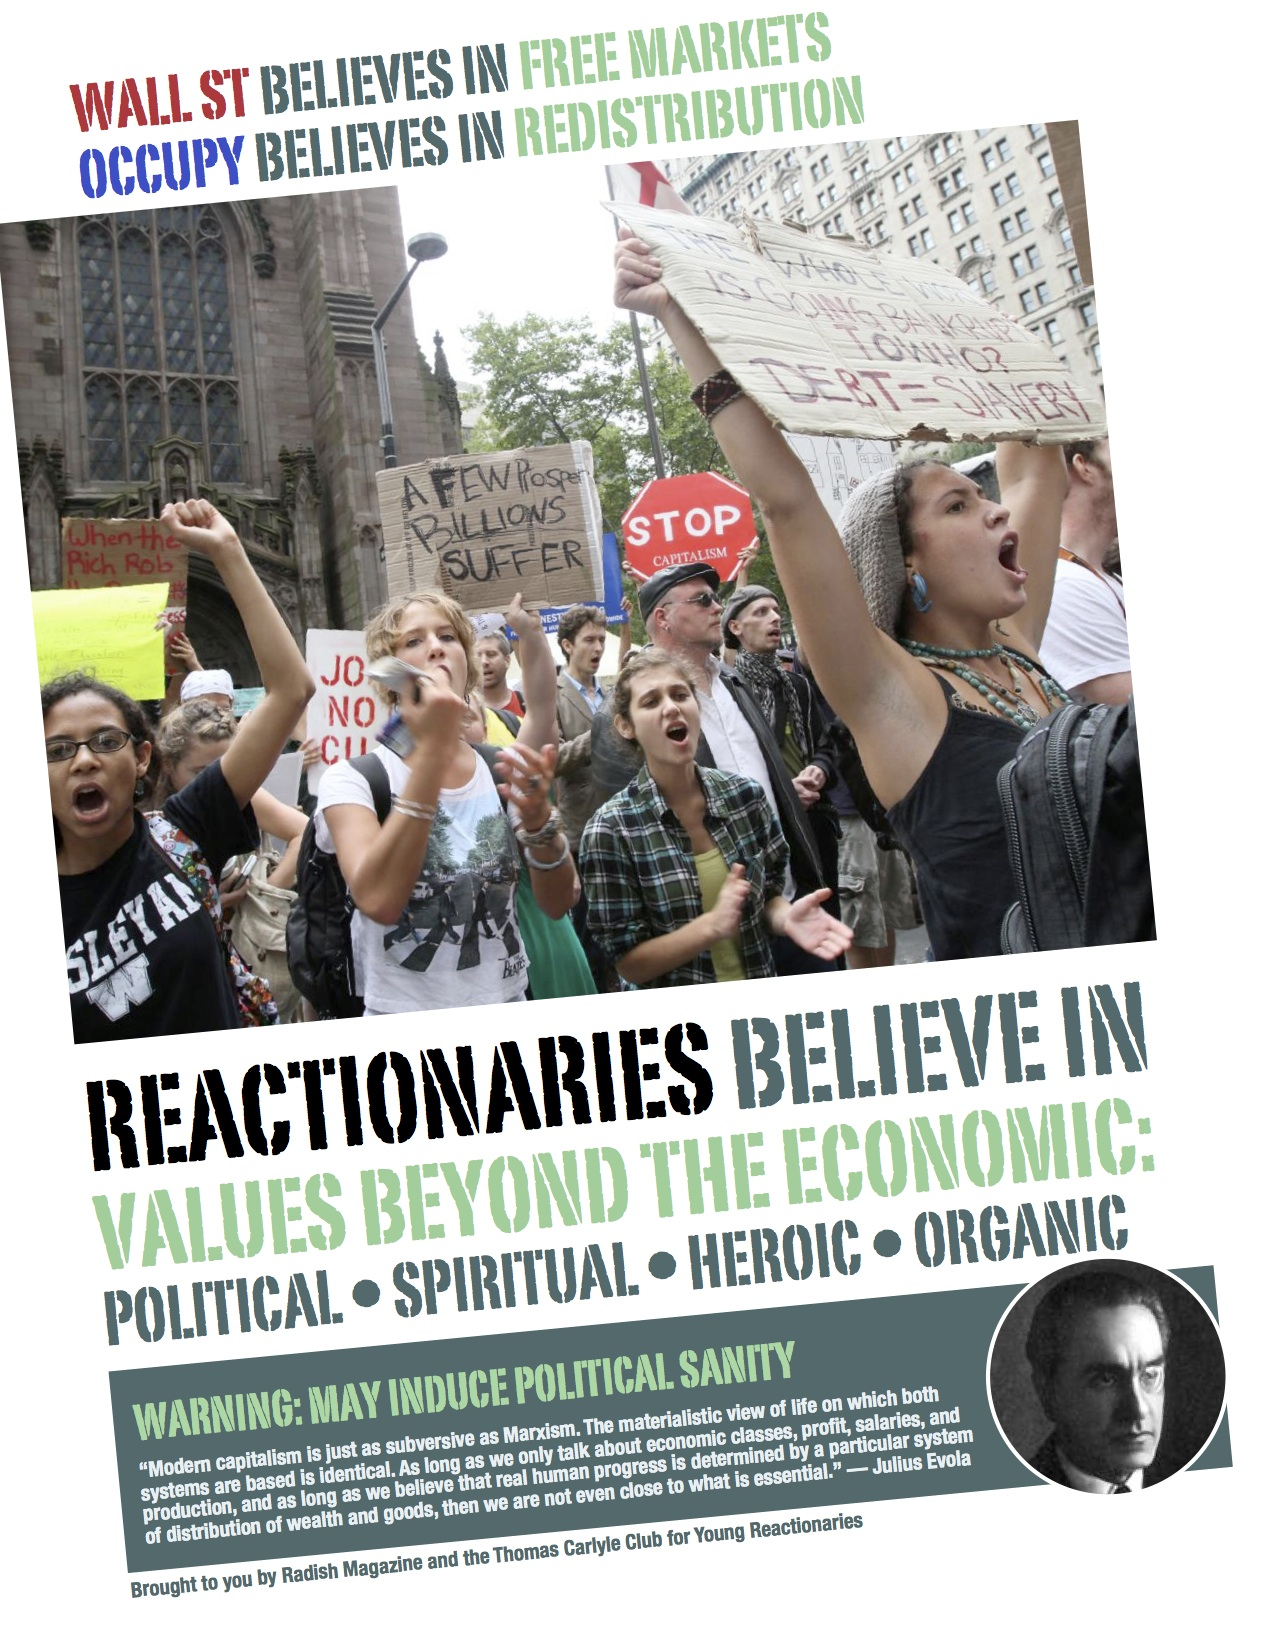 reactionary poster - reactionary values beyond economic